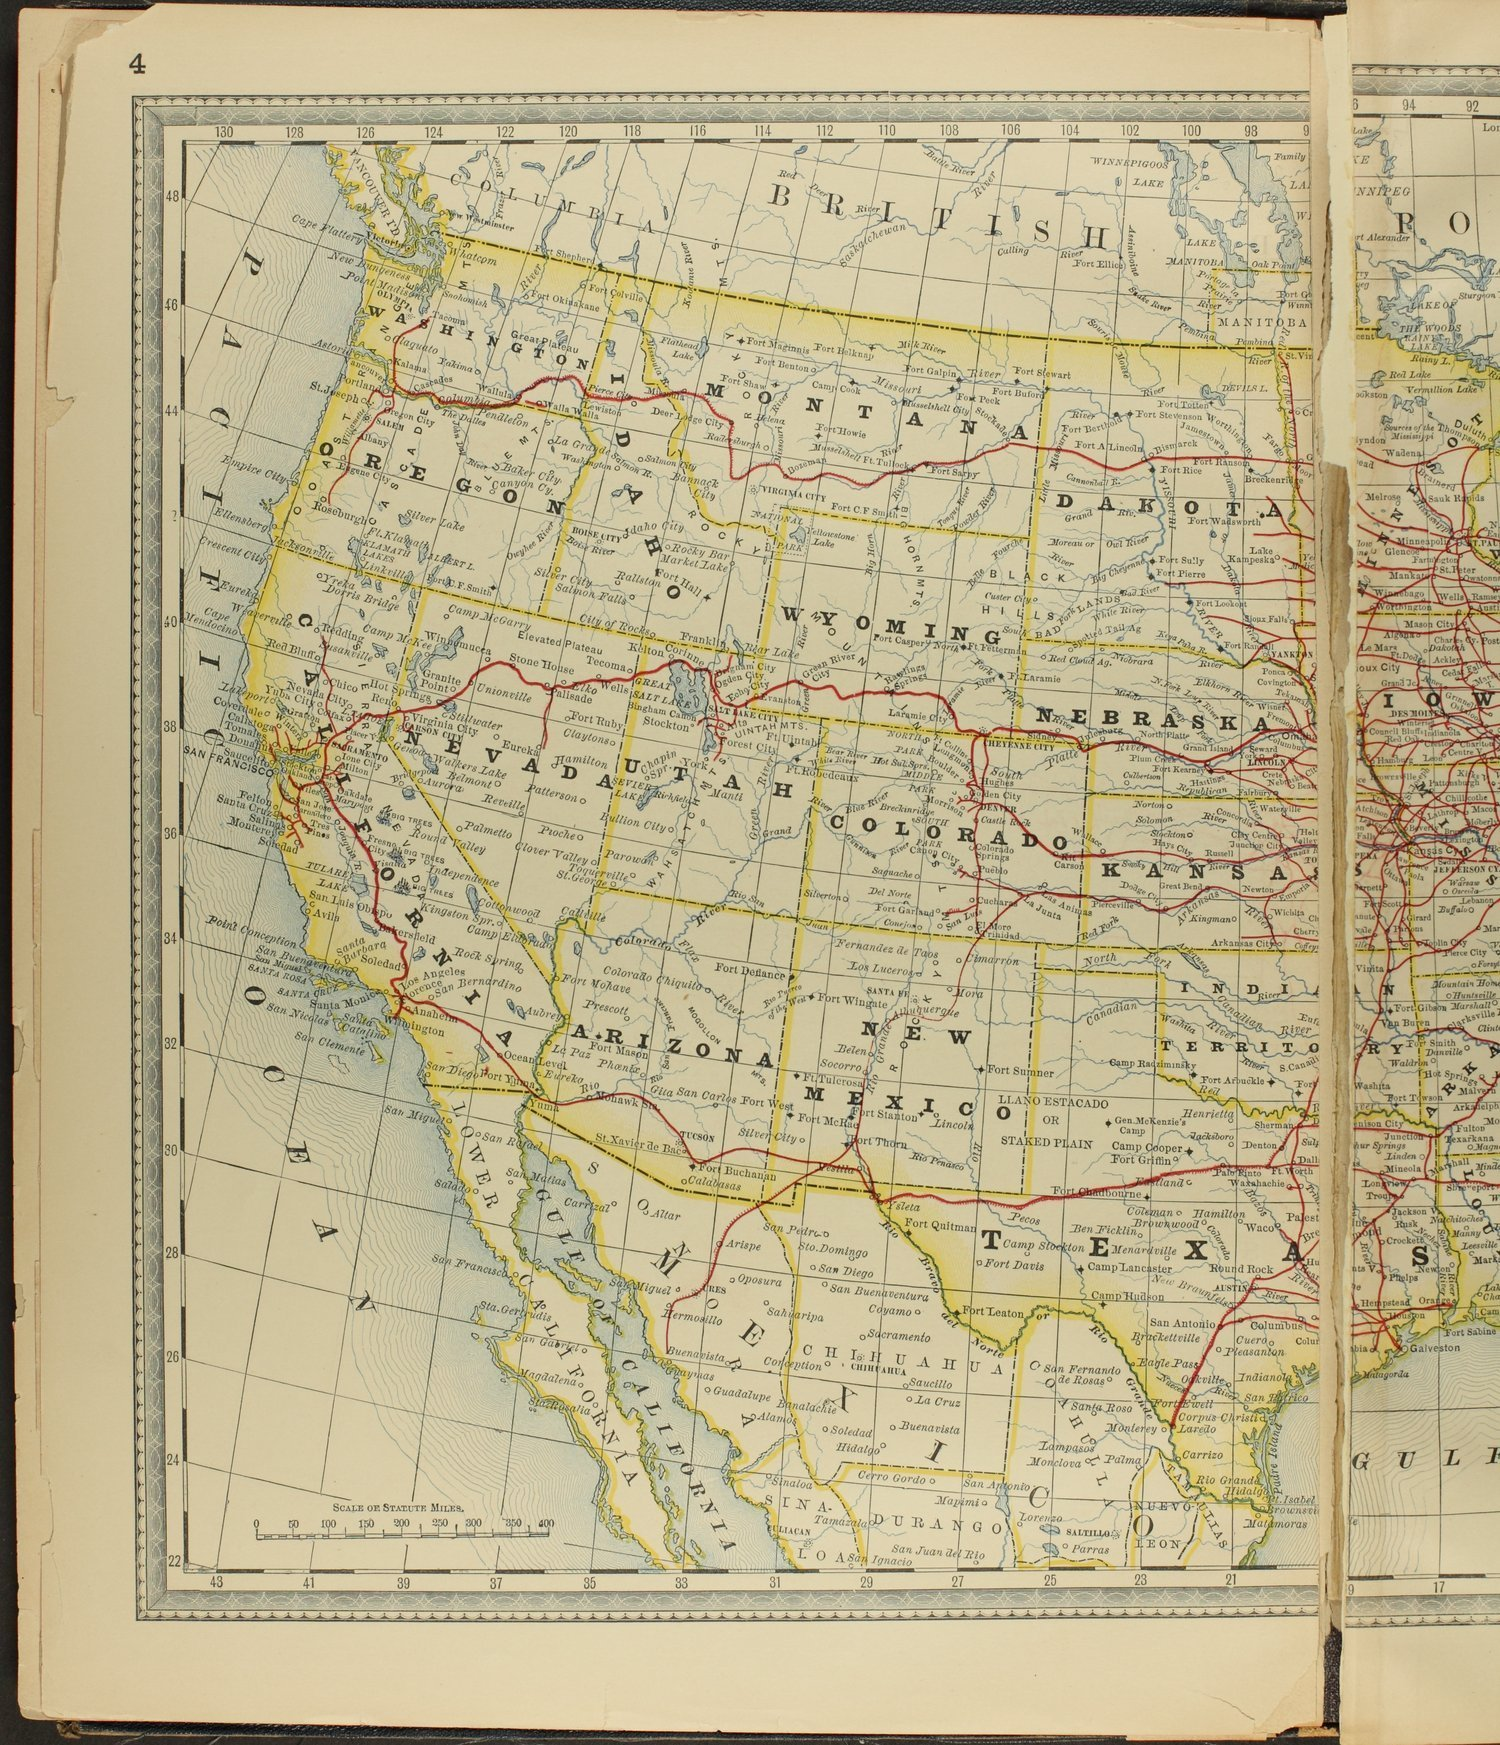 Historical plat book of Clay County, Kansas - Map of the United States